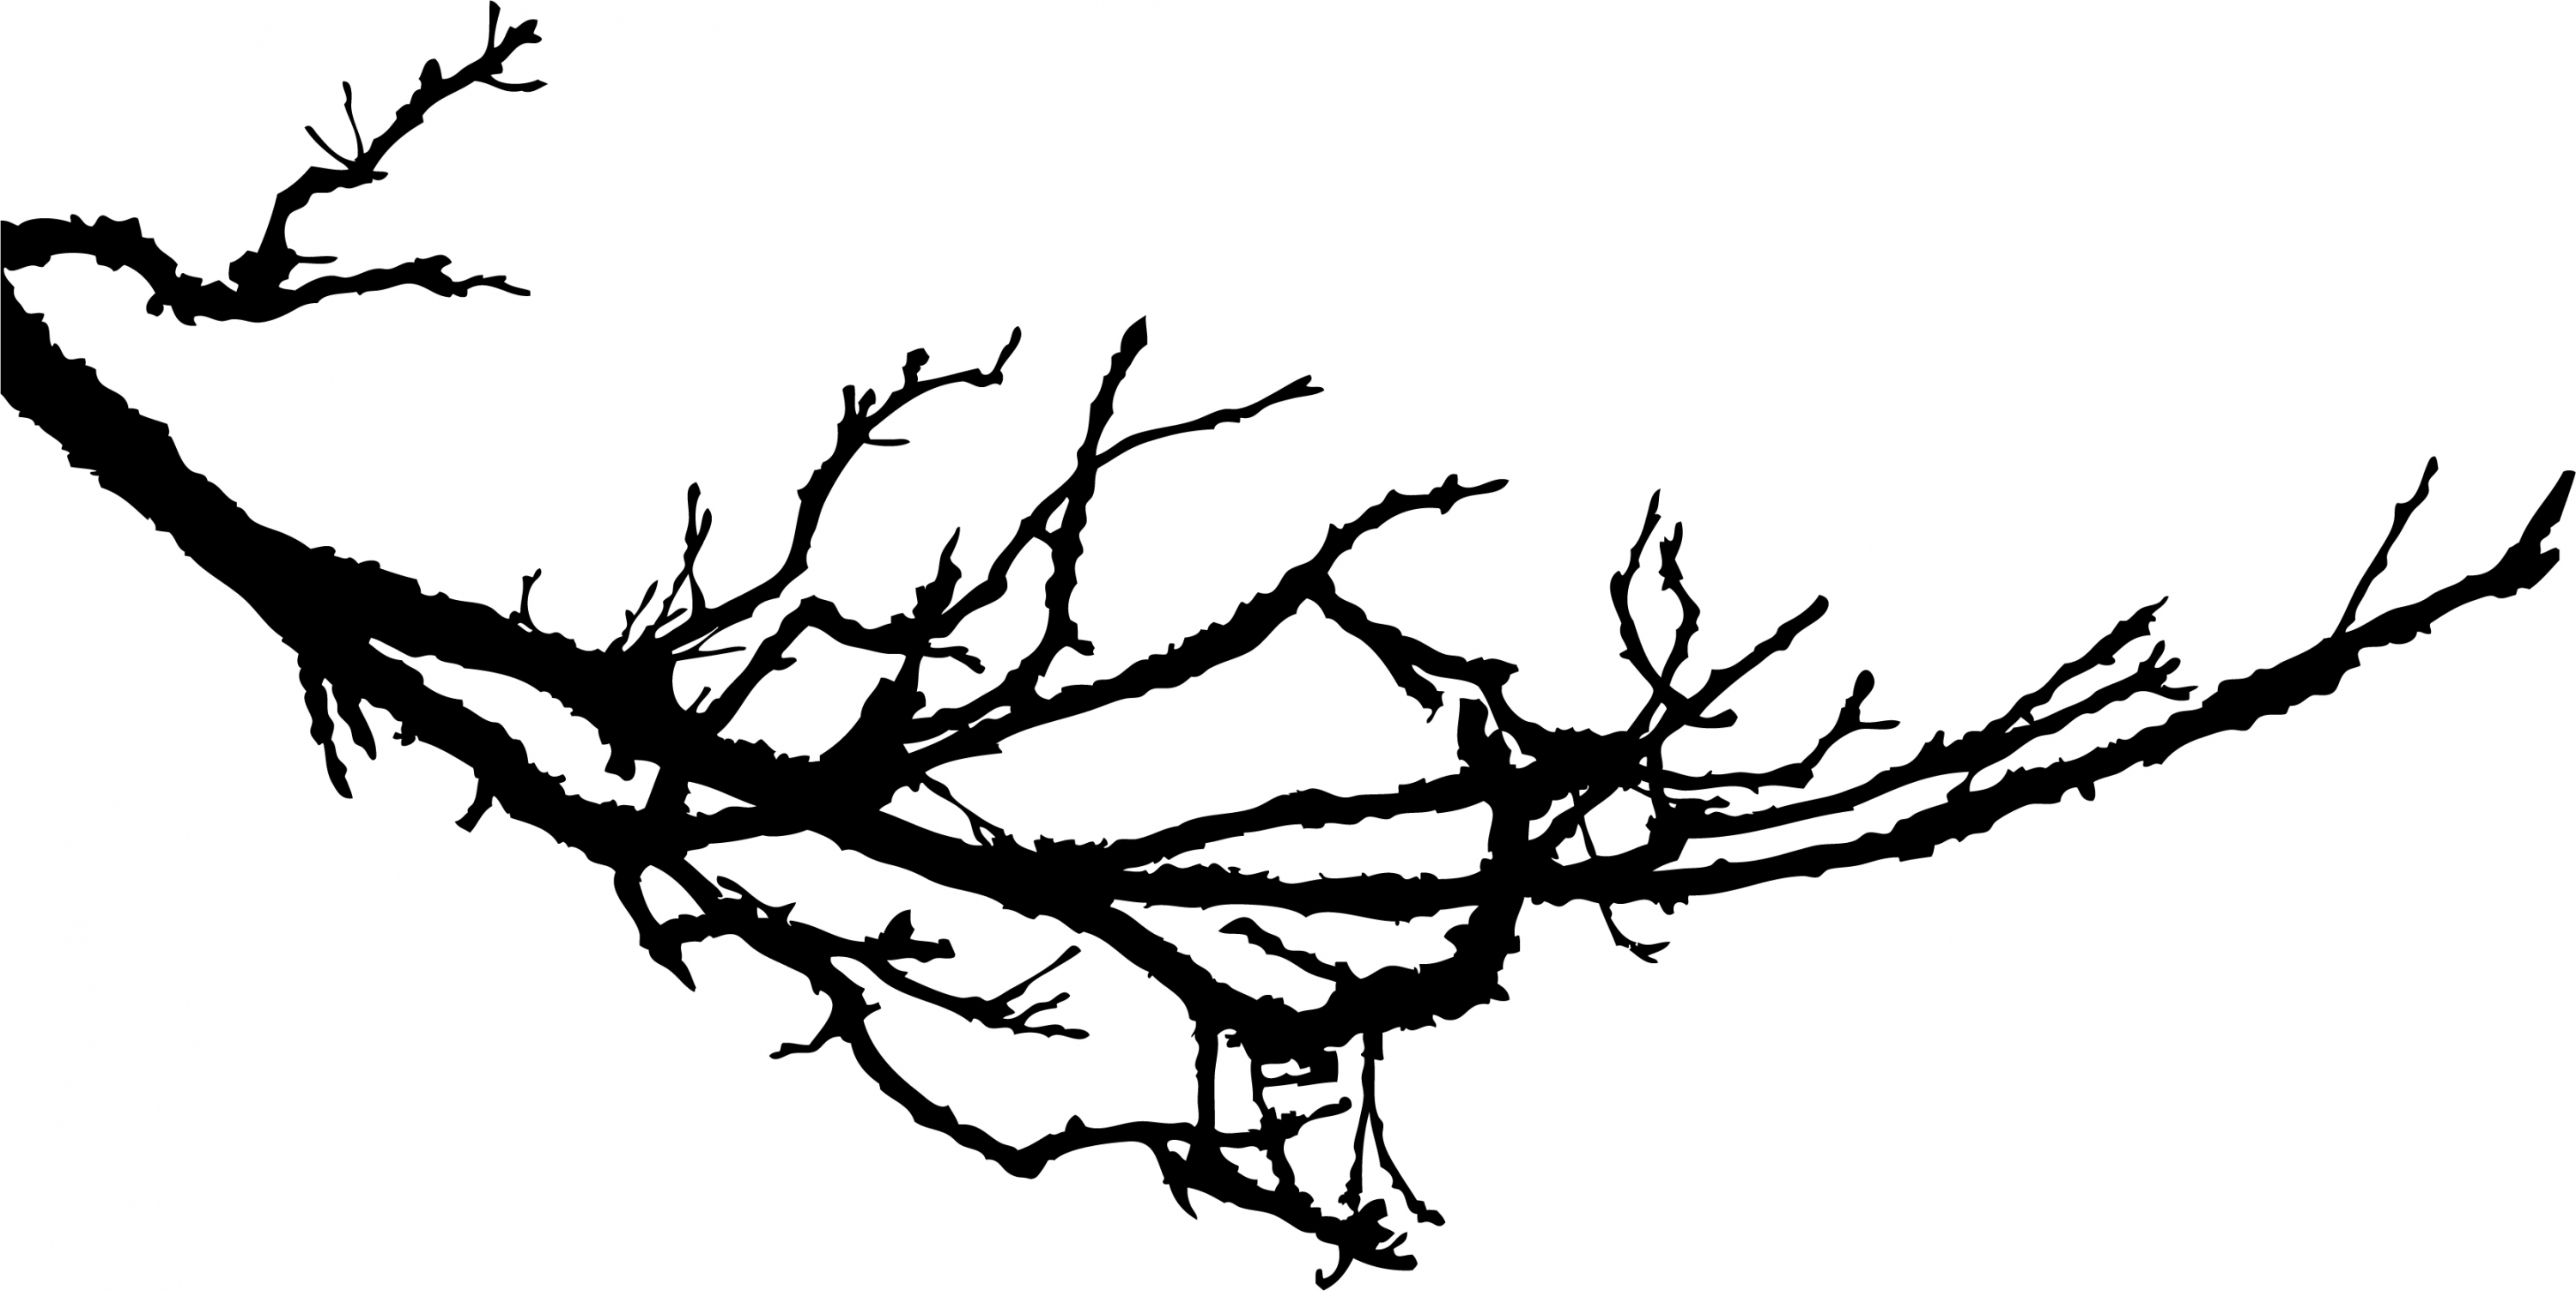 3000x1504 Branck With Birds Clipart Black And White